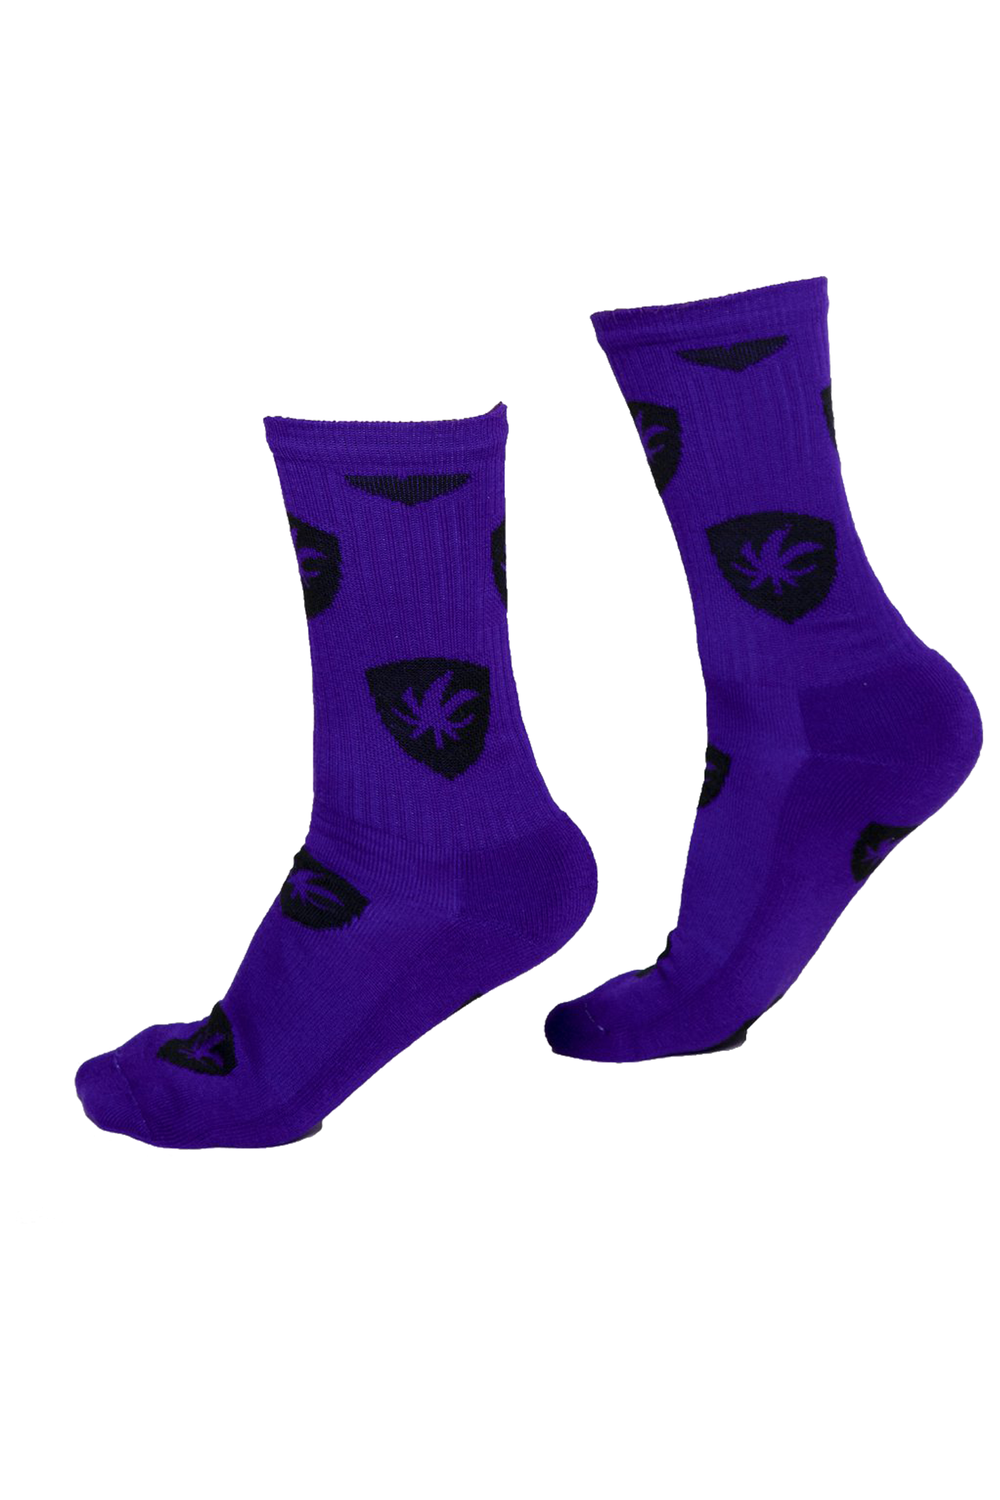 _SVIPE Plant Socks - Purple